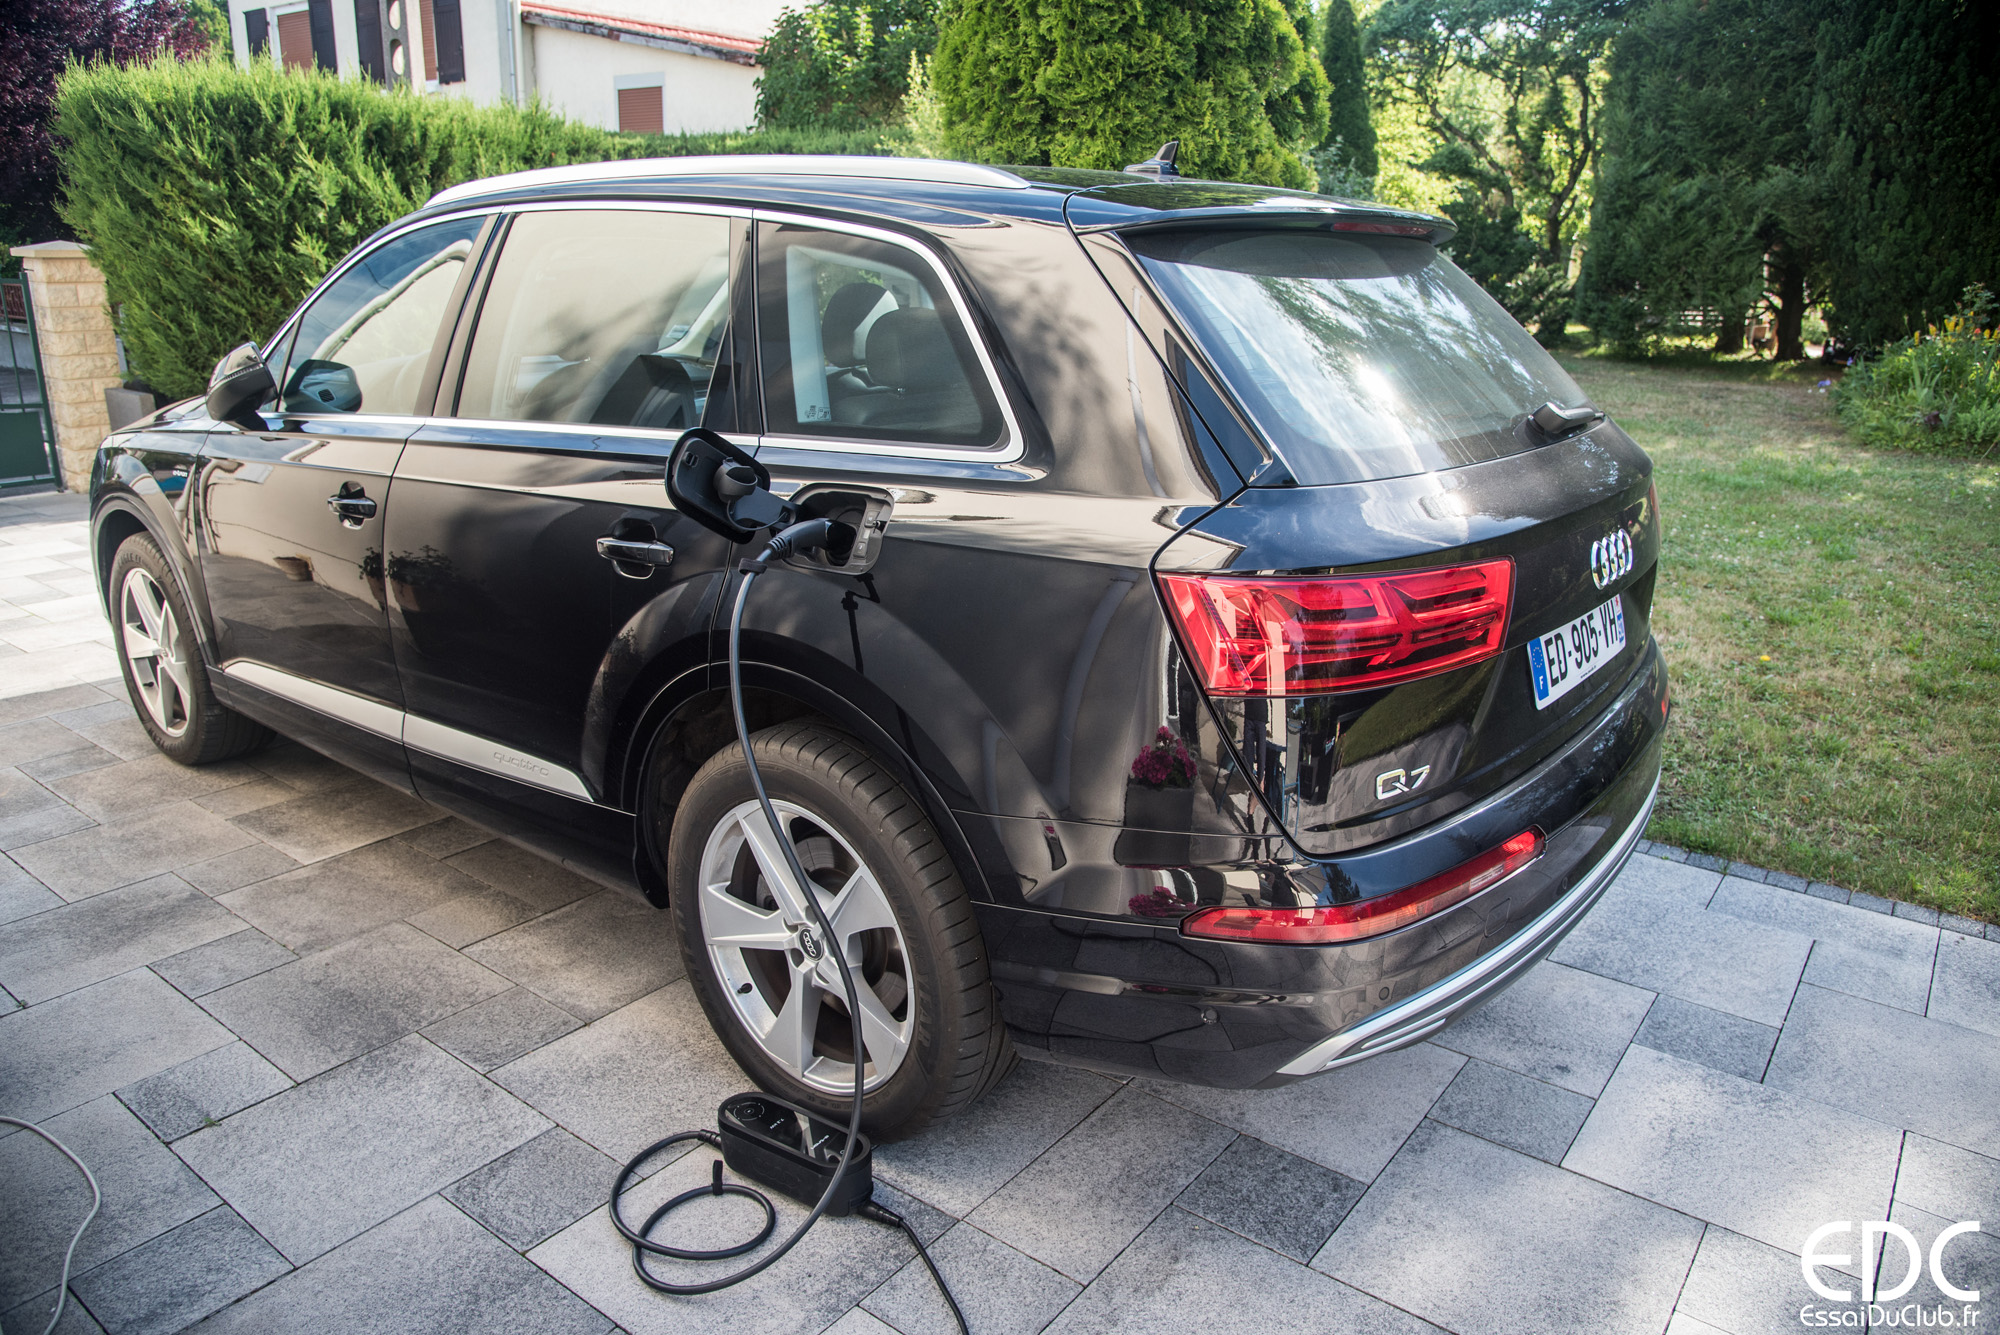 essai audi q7 e tron le v6 tdi de 373ch colo essais. Black Bedroom Furniture Sets. Home Design Ideas